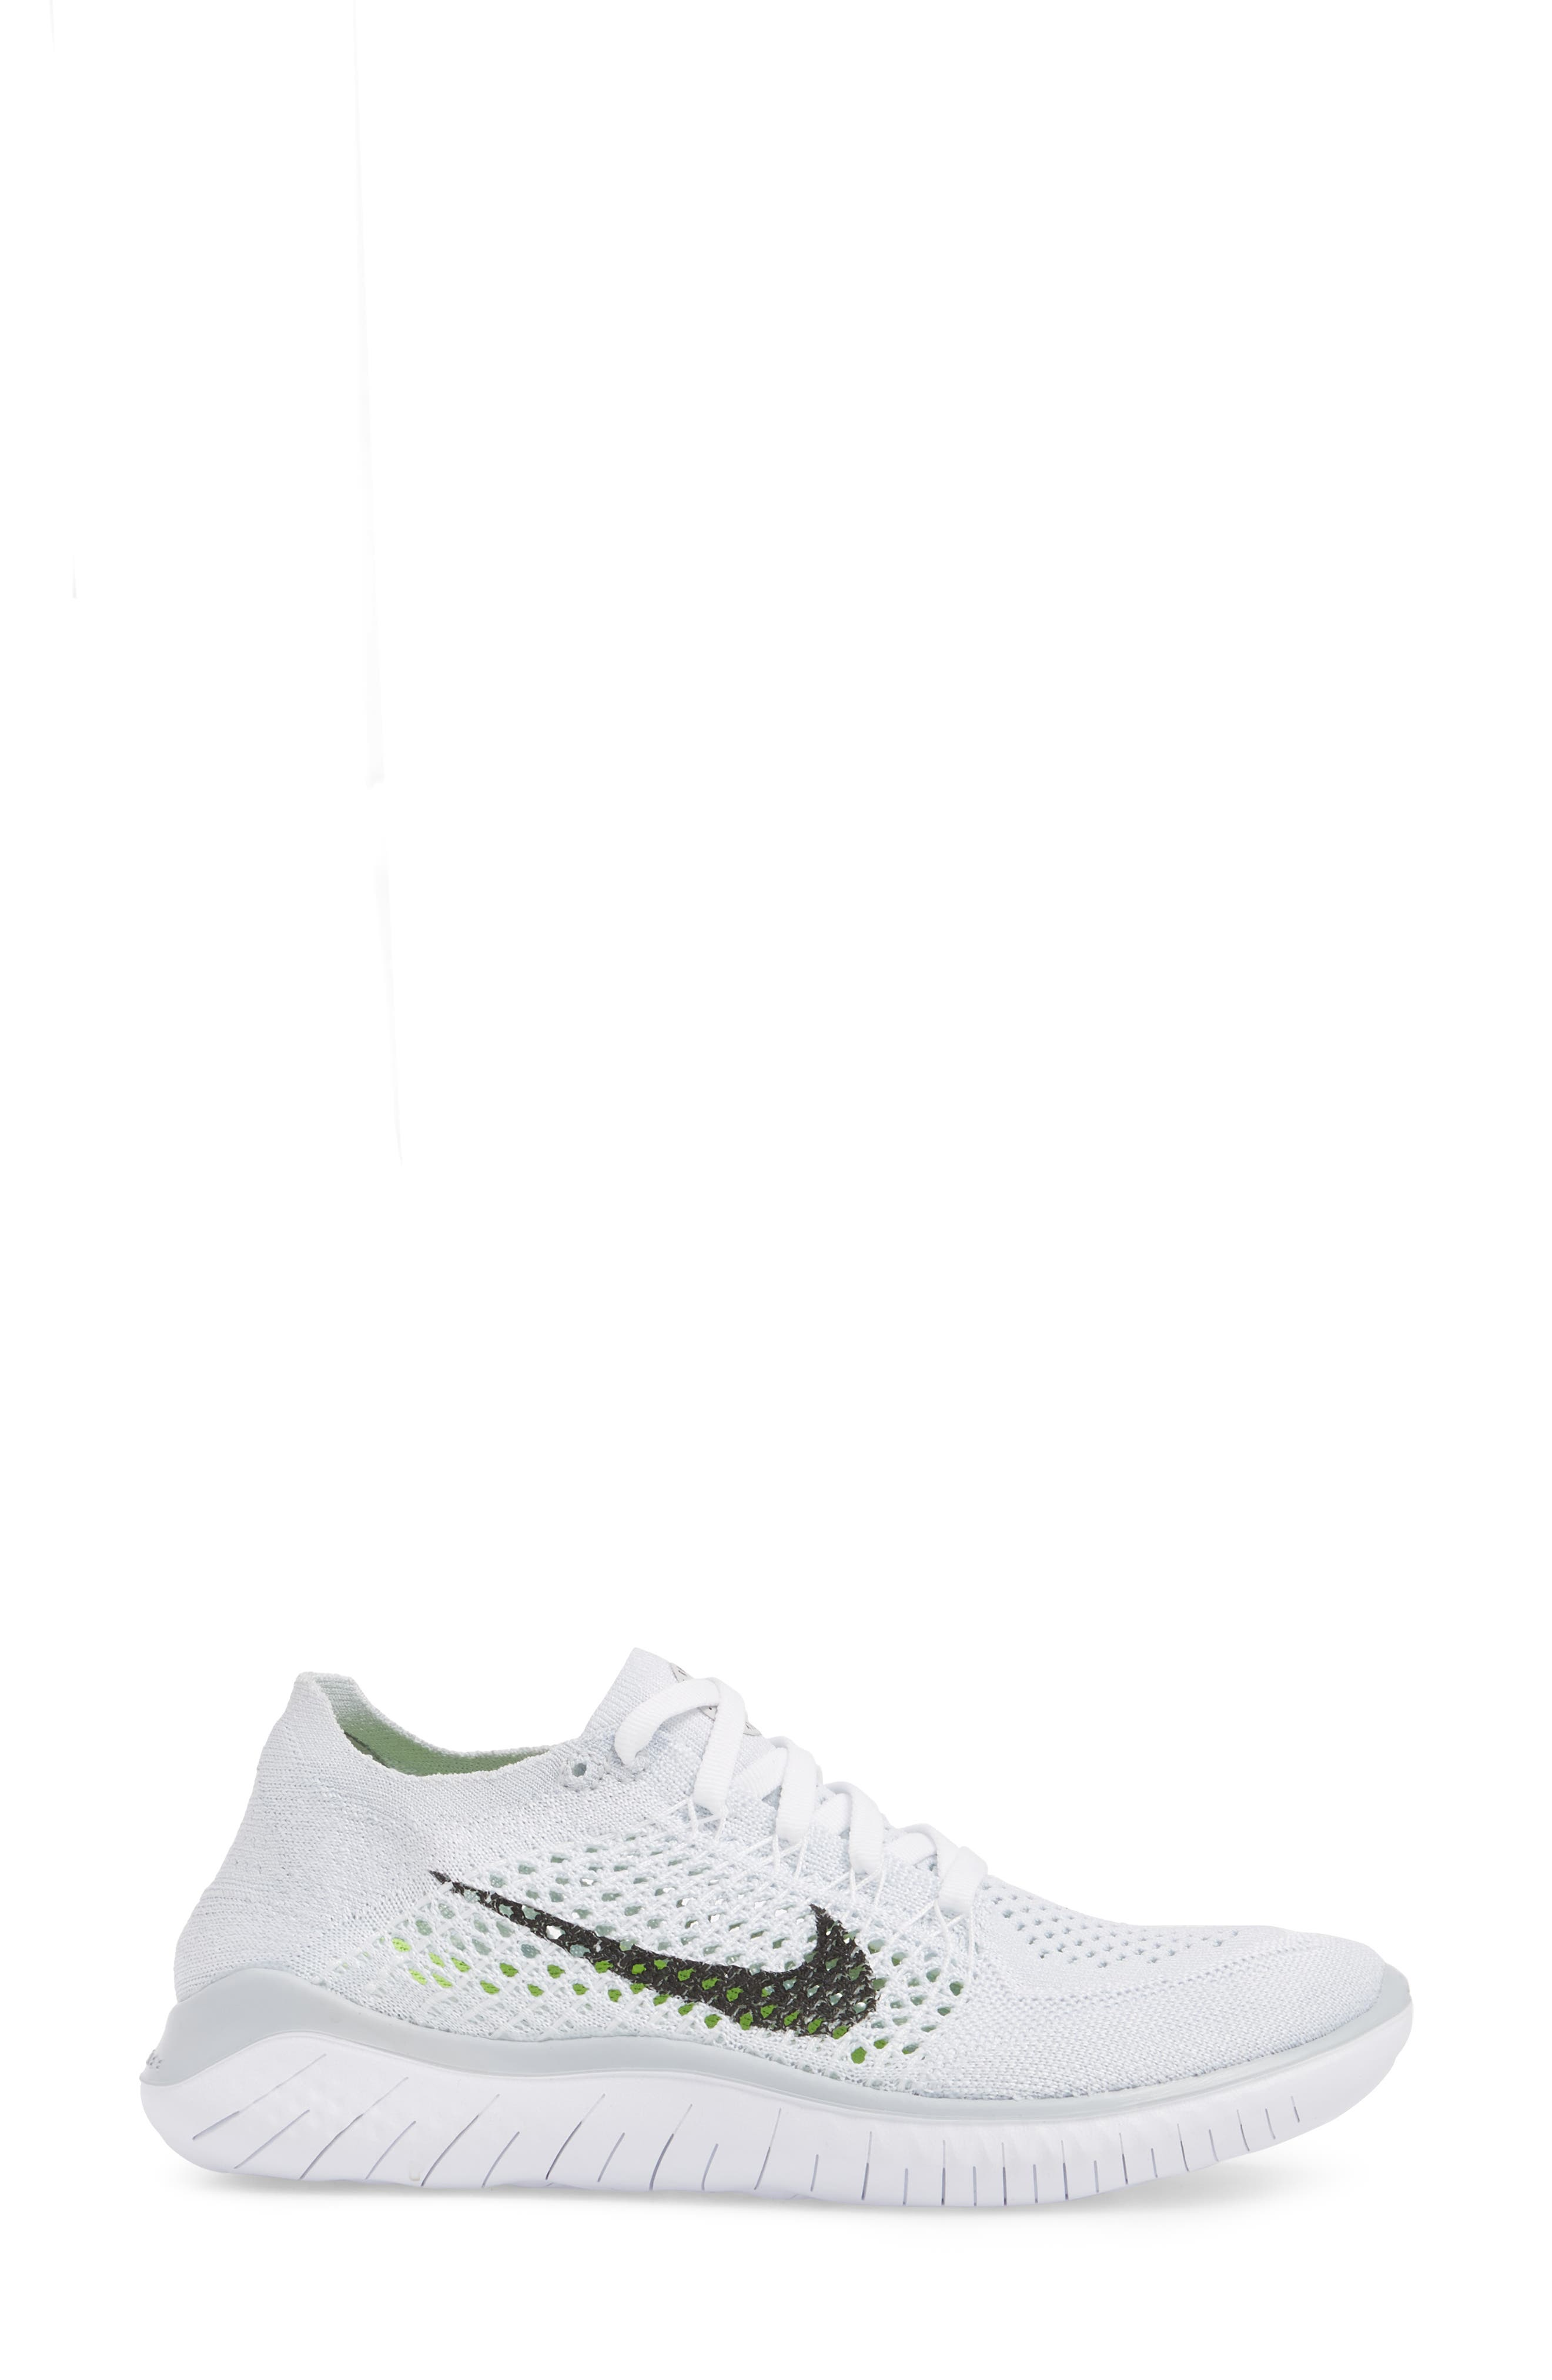 Free RN Flyknit 2018 Running Shoe,                             Alternate thumbnail 3, color,                             WHITE/ BLACK/ PURE PLATINUM